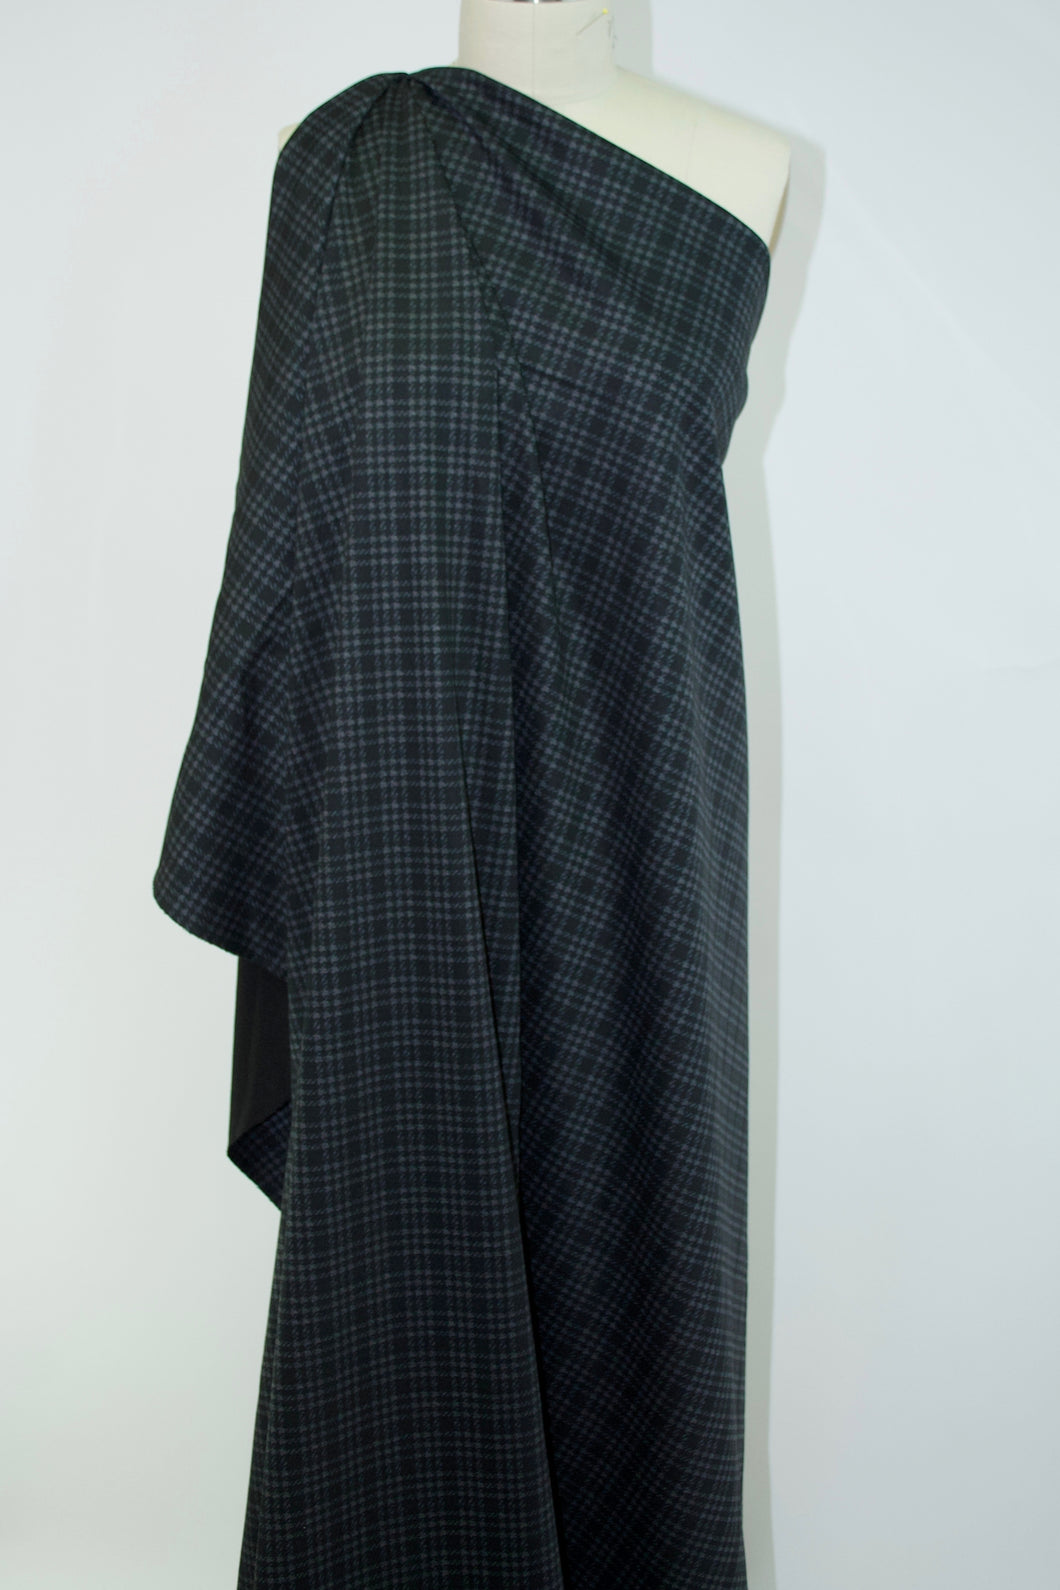 Glen Plaid  NY Designer Scuba Knit - Gray/Black